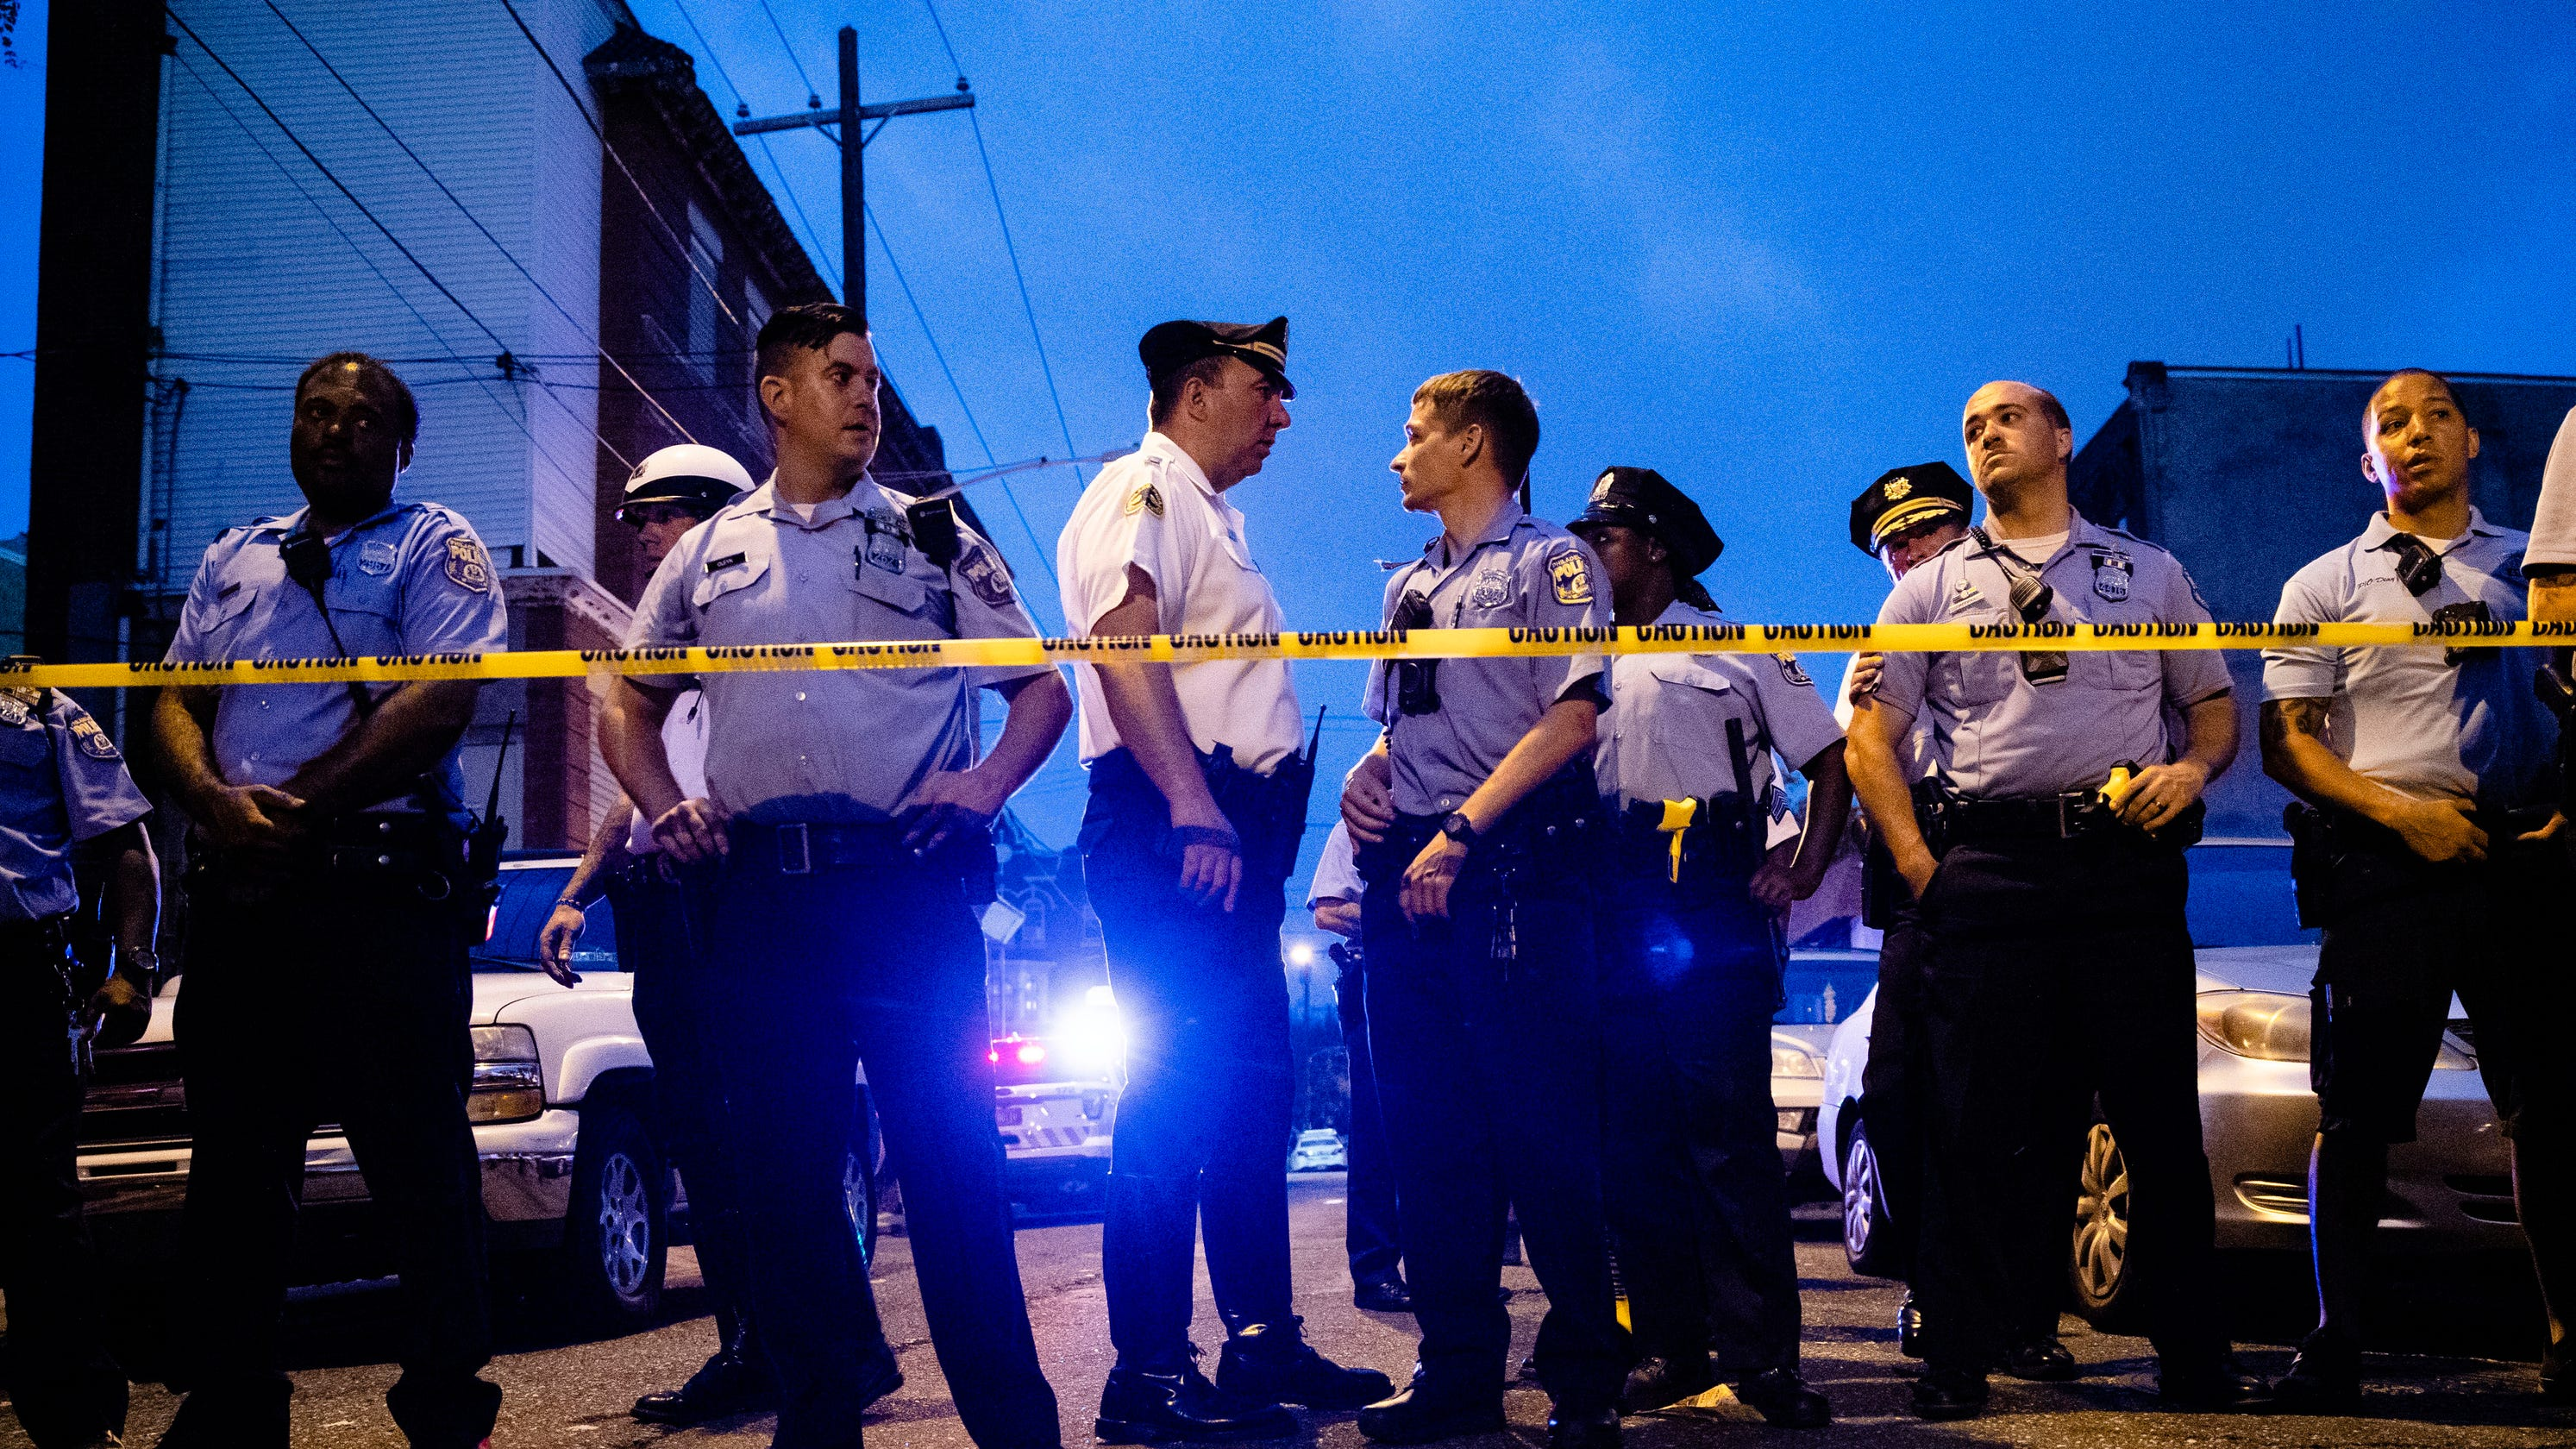 Philadelphia police shooting: 6 officers shot